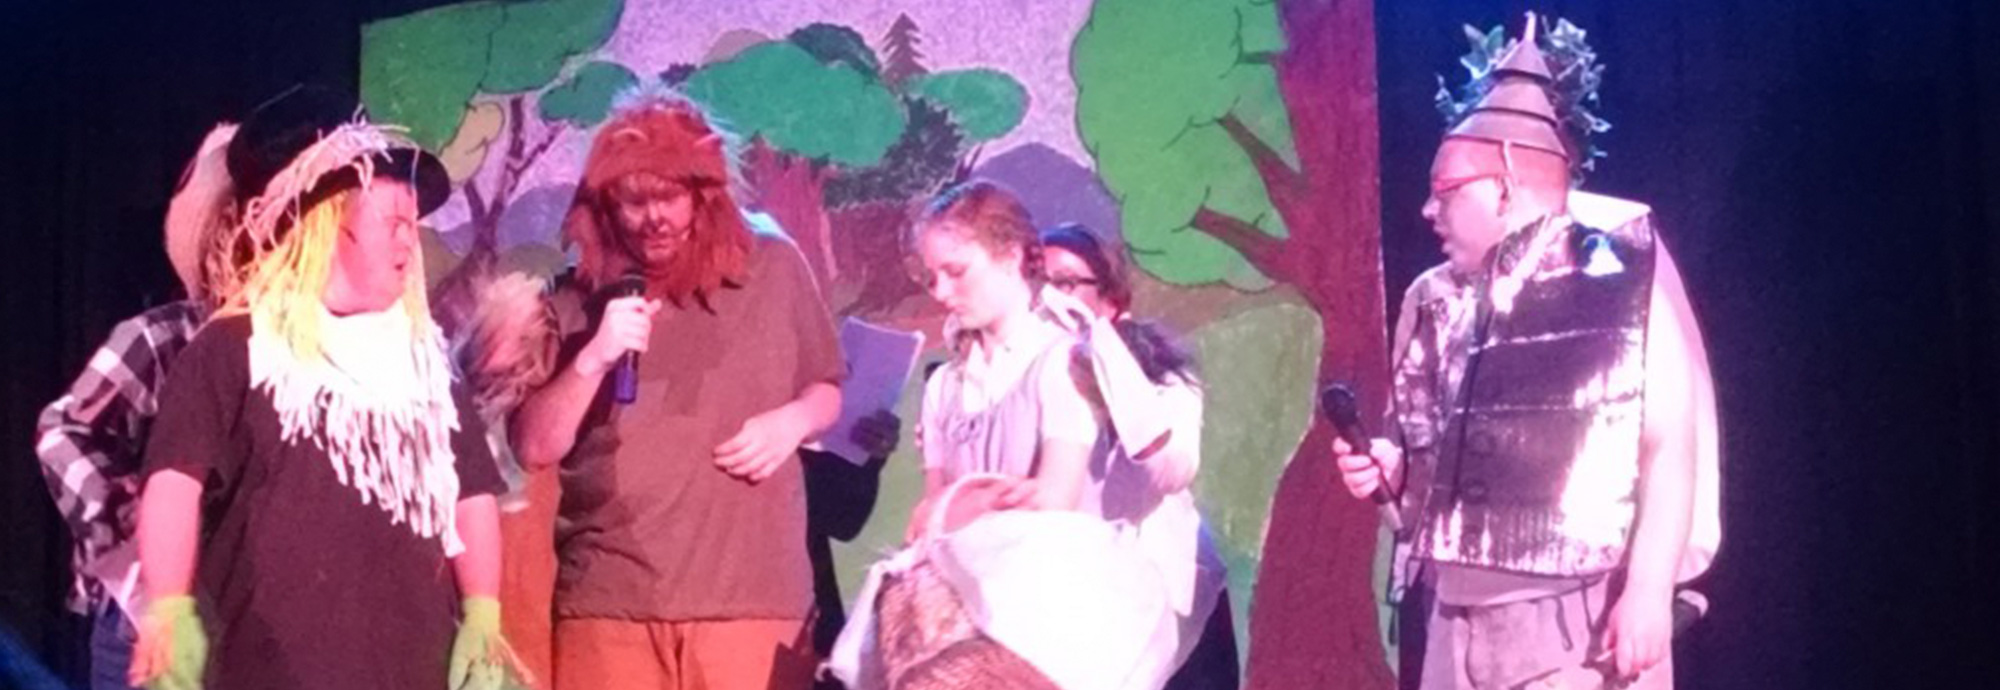 community play of Wizard of Oz